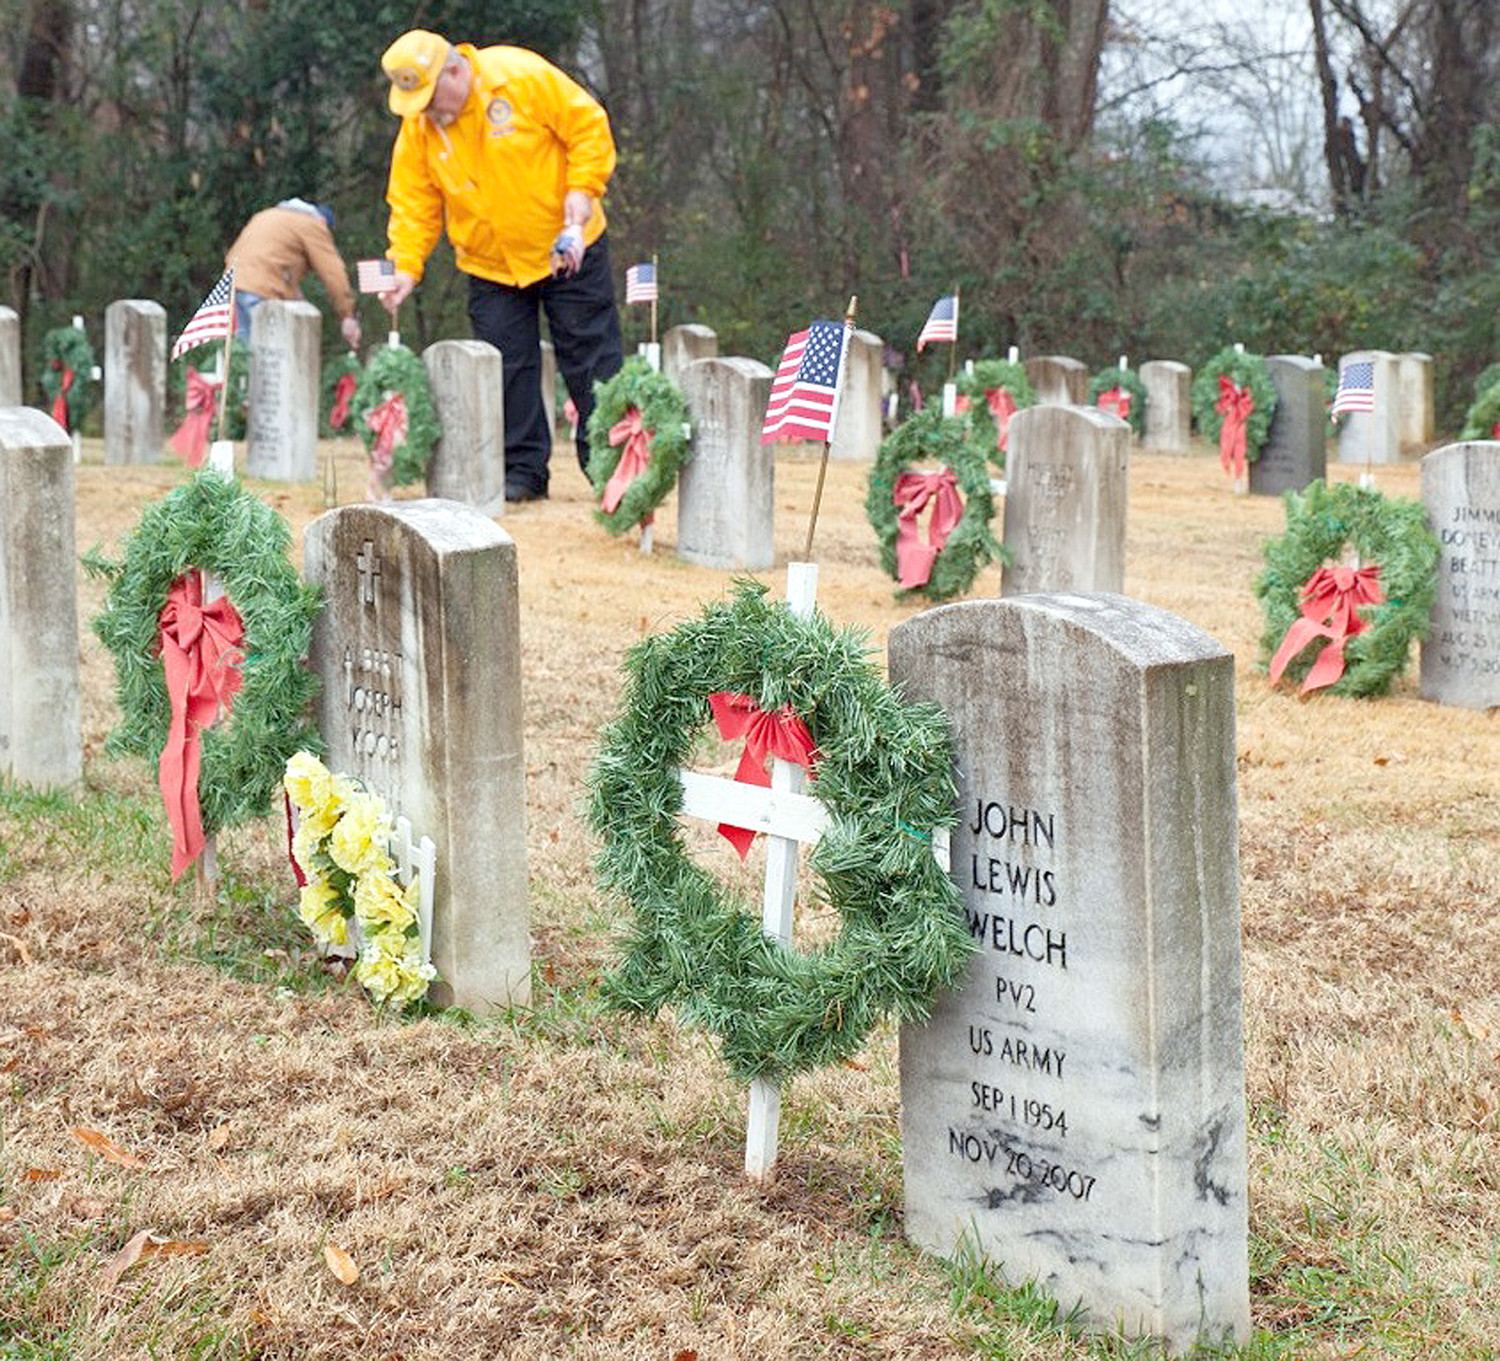 BRADLEY COUNTY's Rick Williams, and an unidentified local veteran in the background, were busy recently as they participated in AmVets Post 13's Christmas wreath ceremony in Fort Hill Cemetery. The program has been ongoing for eight years.